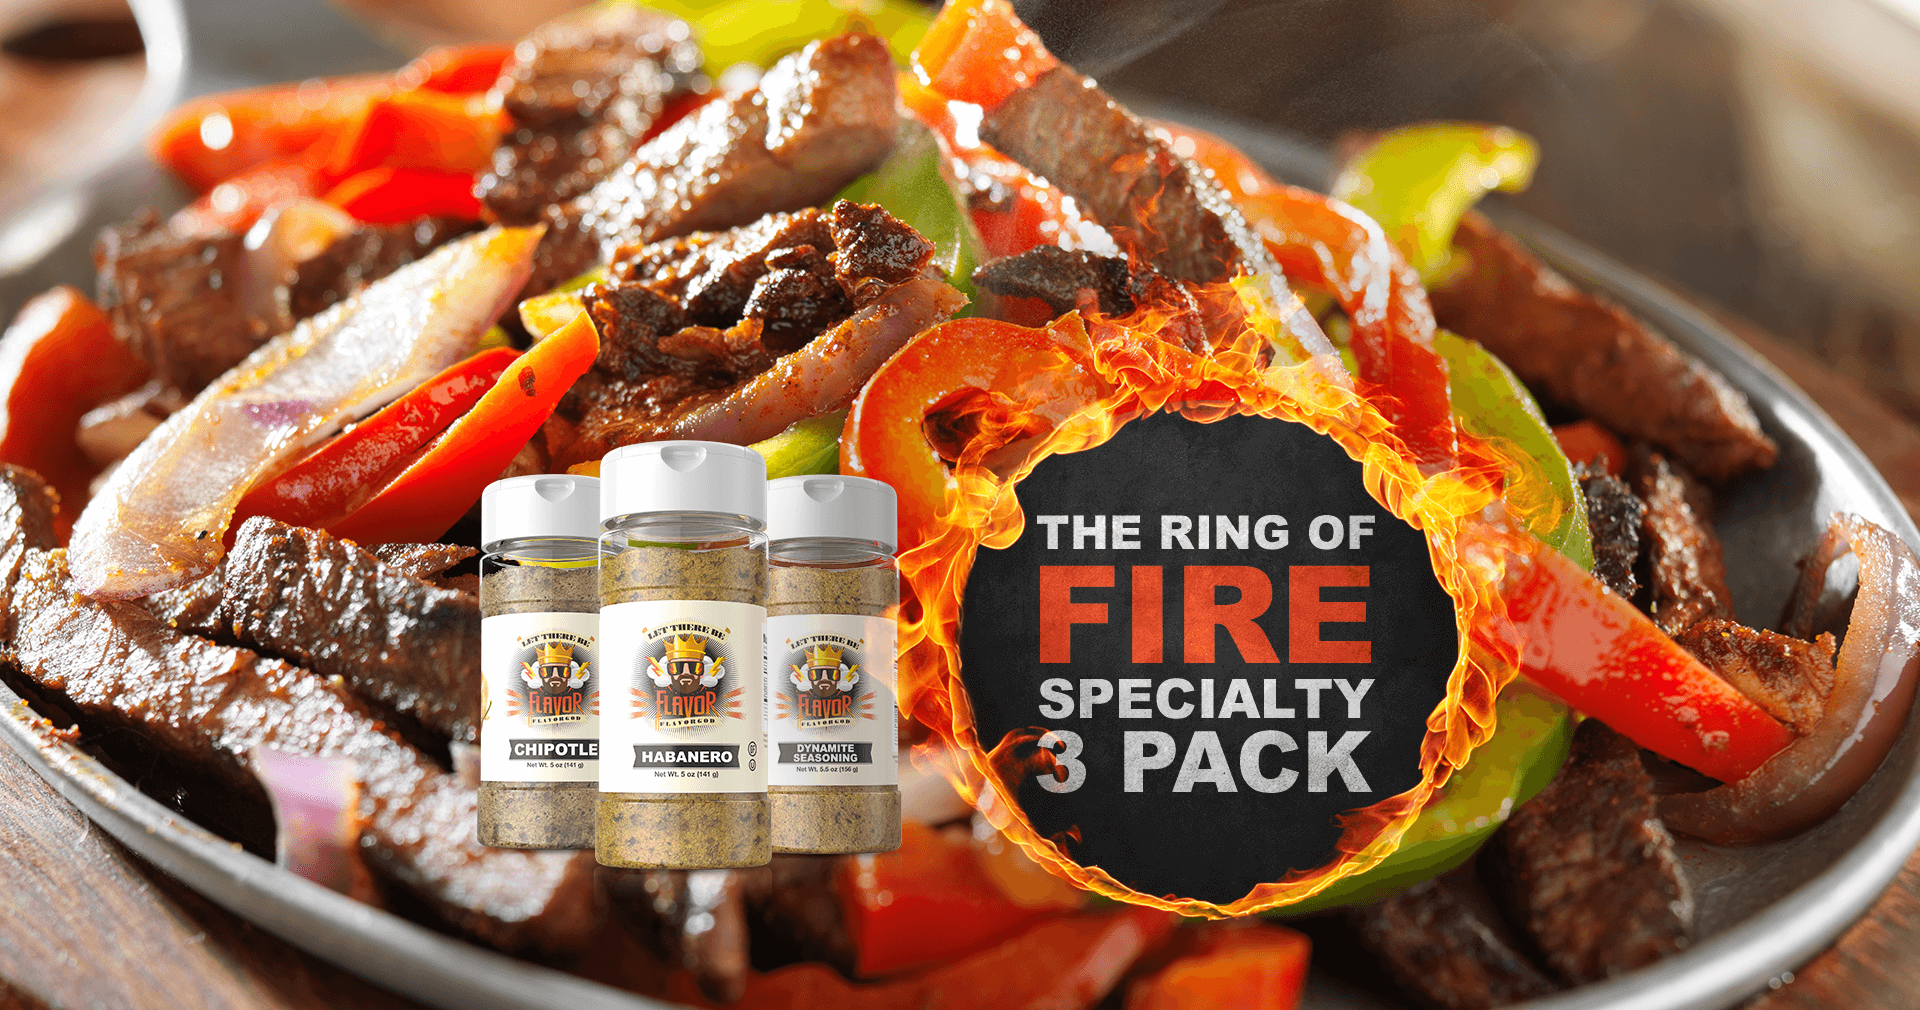 The RING OF FIRE Specialty pack